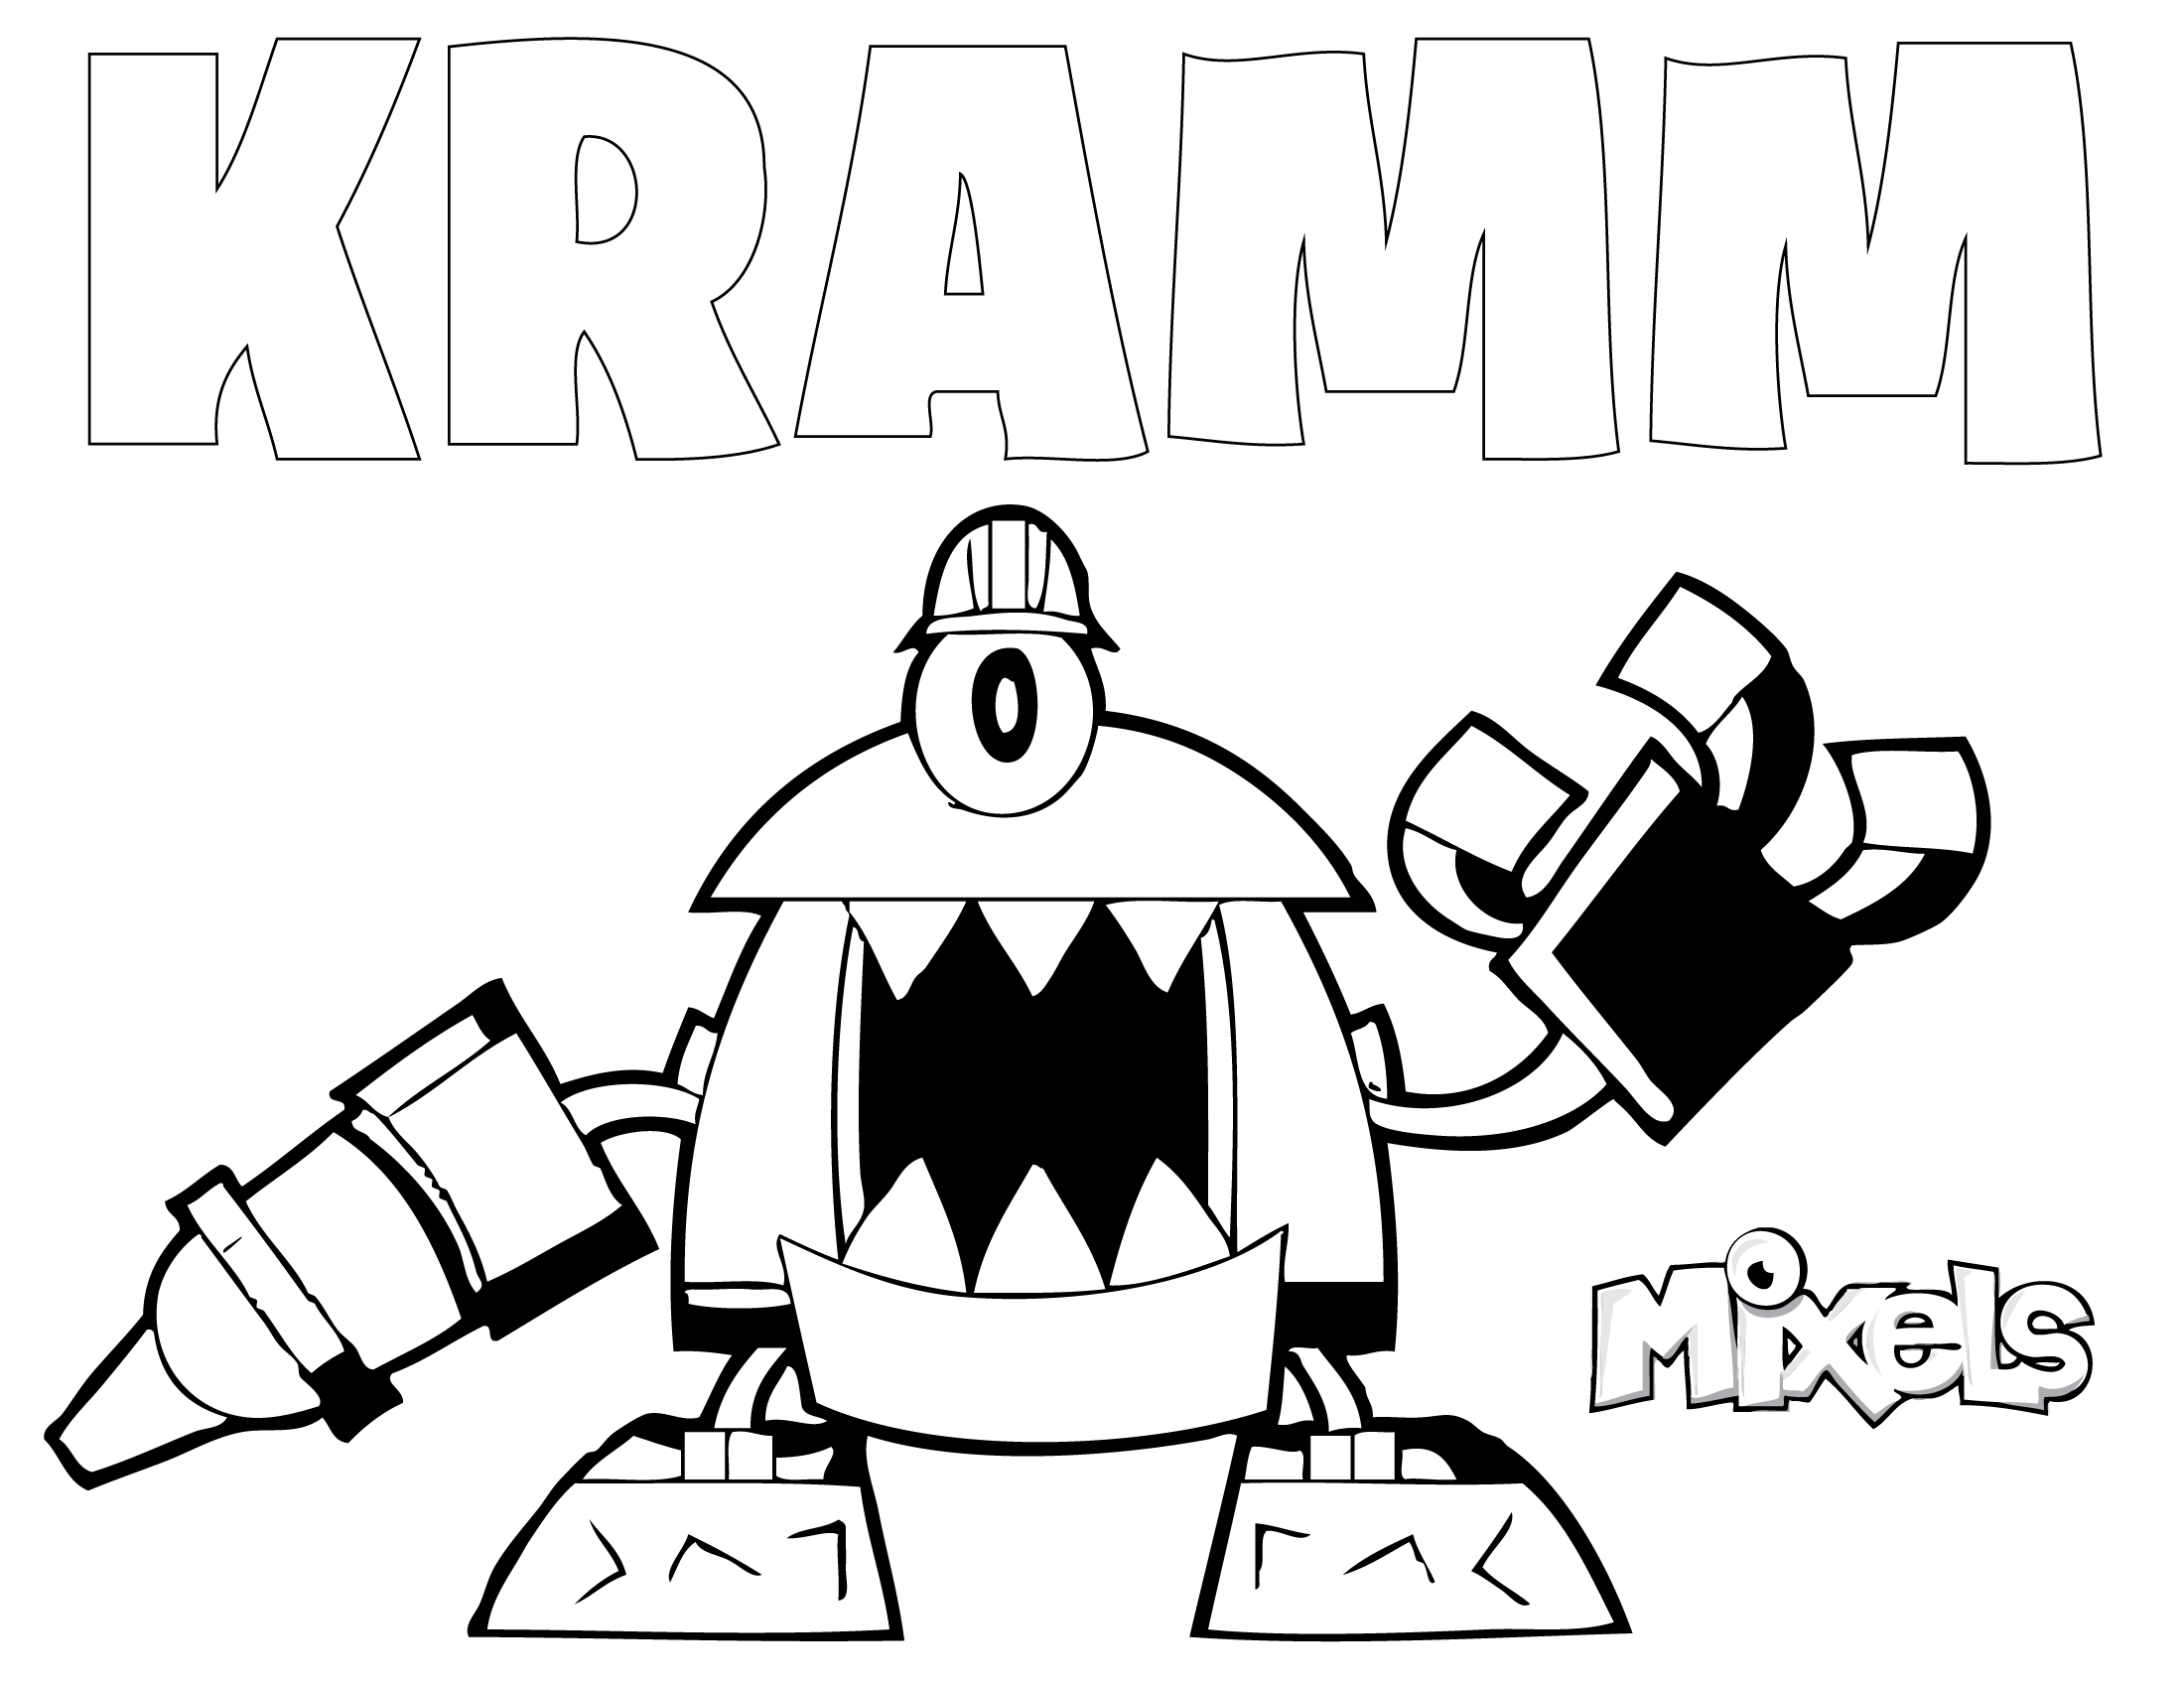 mixels coloring pages to print - photo#25